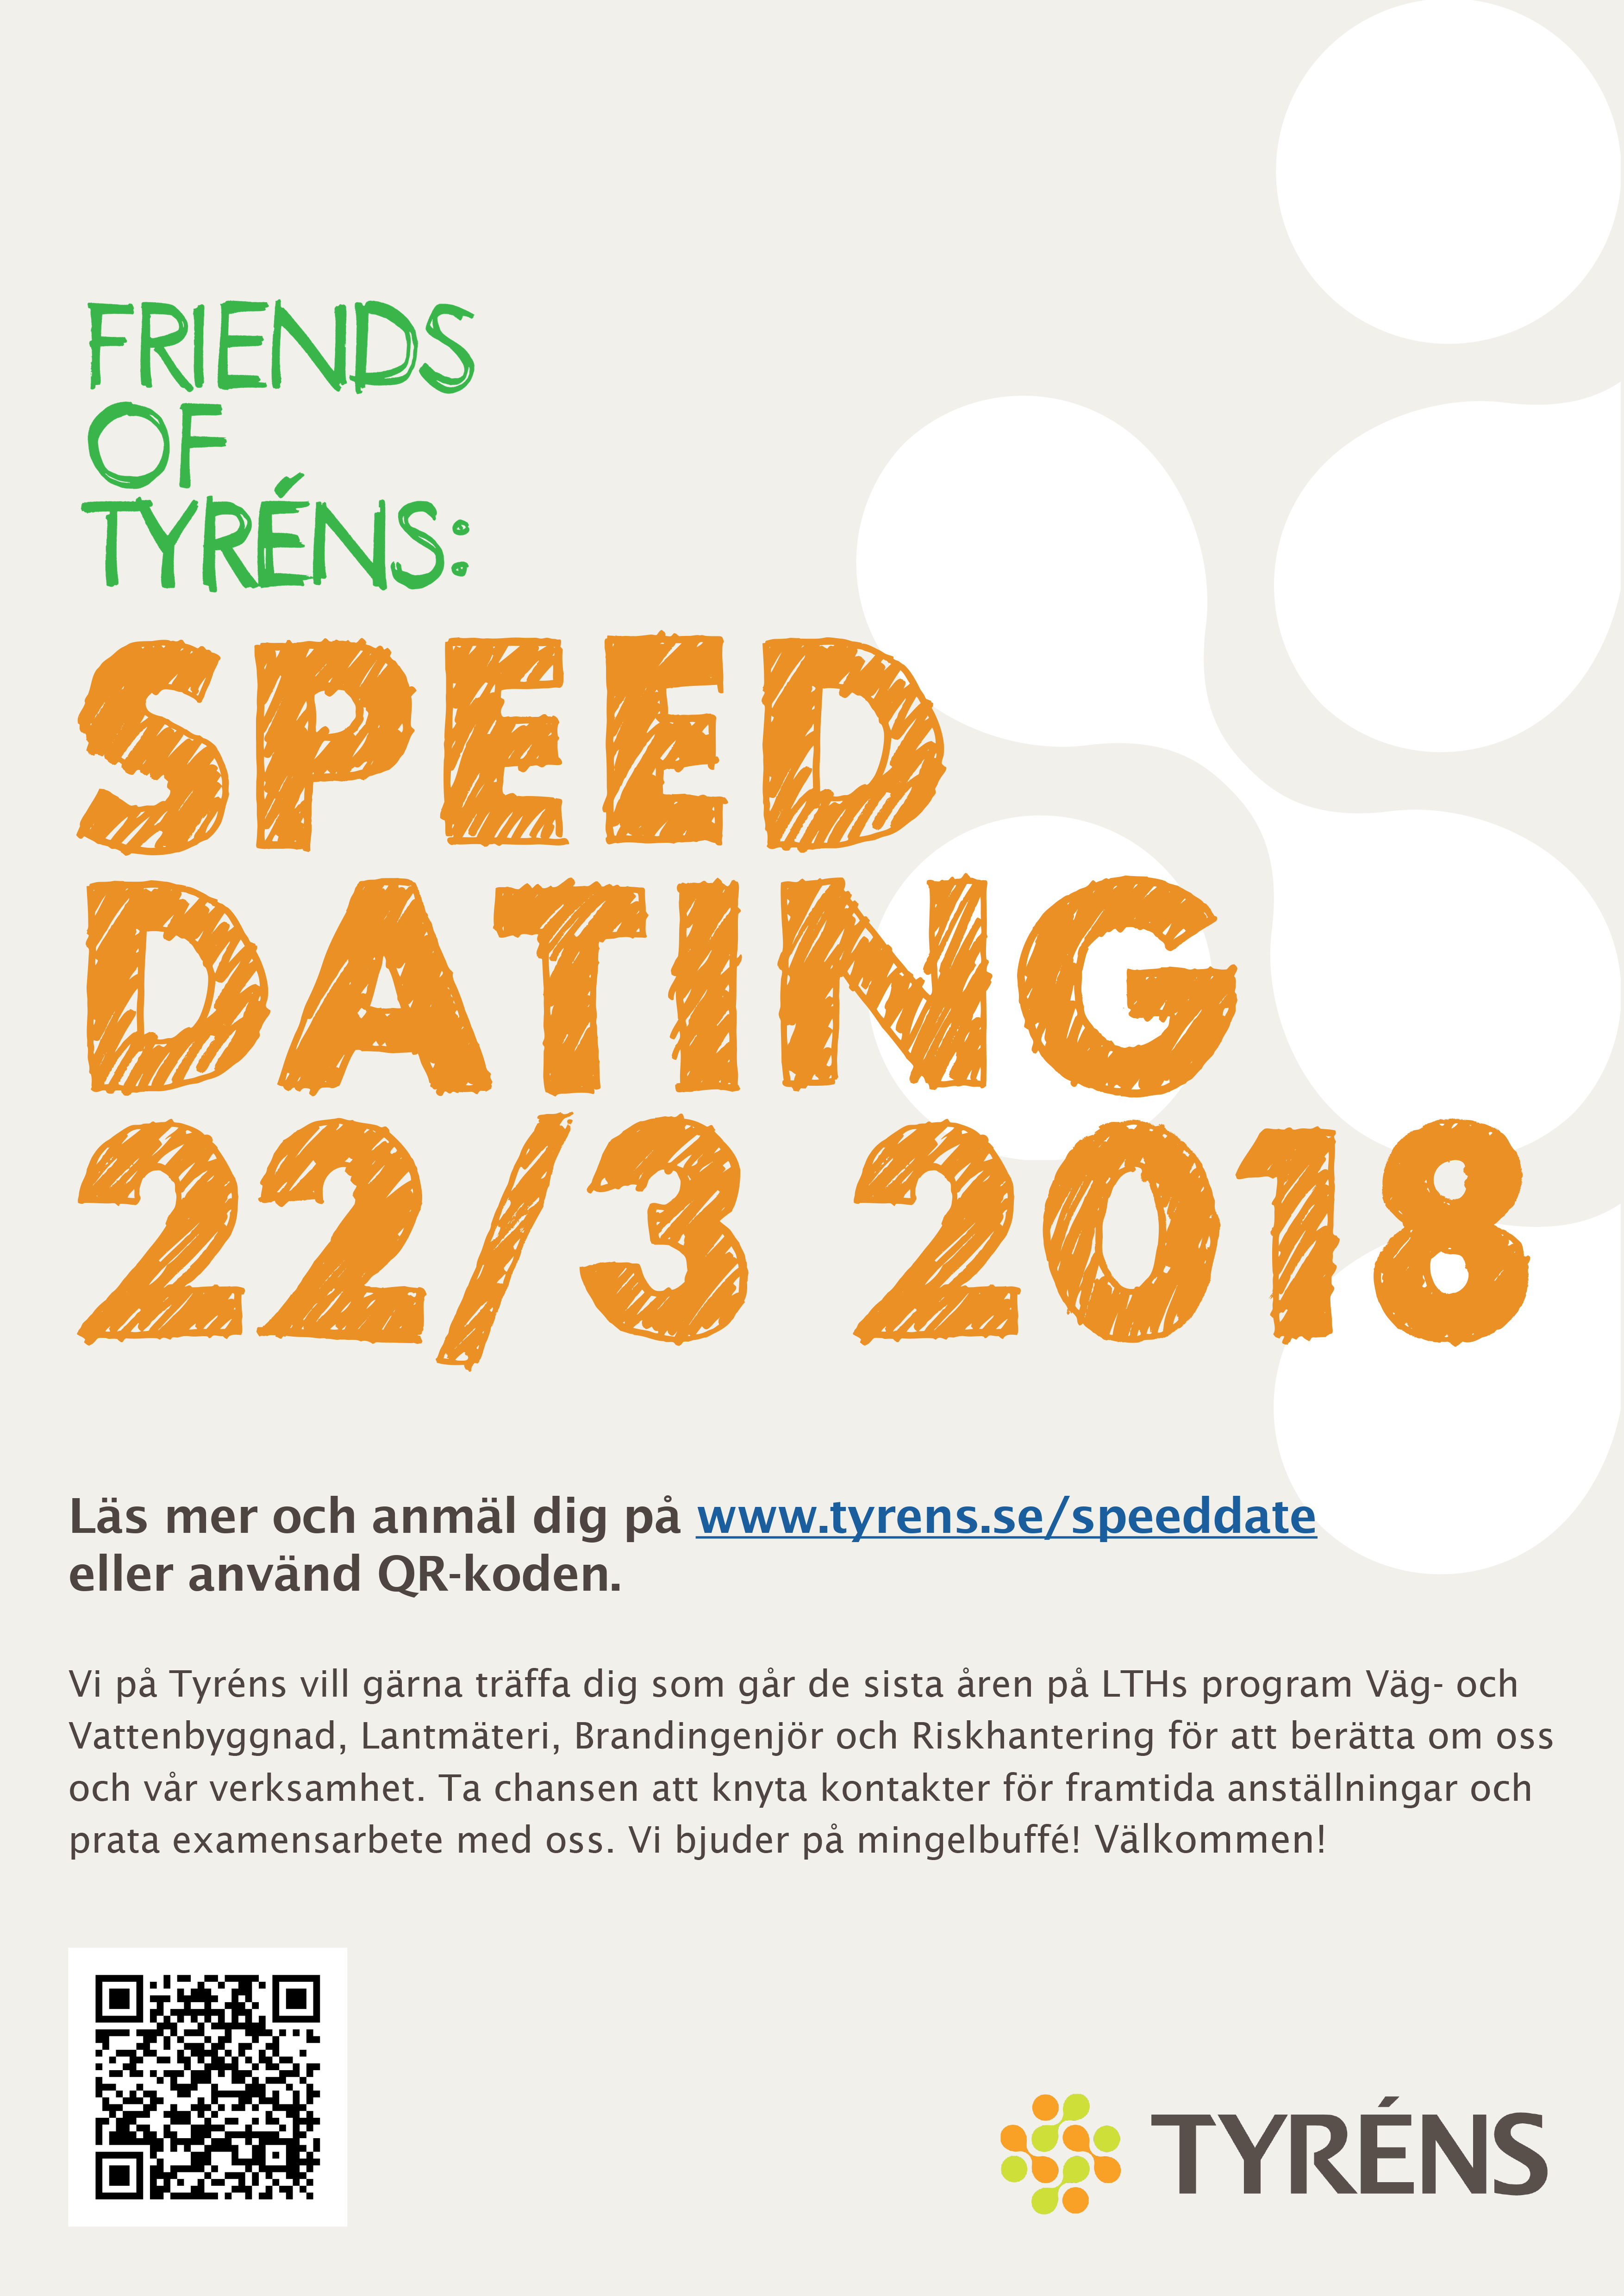 Case speed dating - Ekonomihgskolan - Lunds universitet